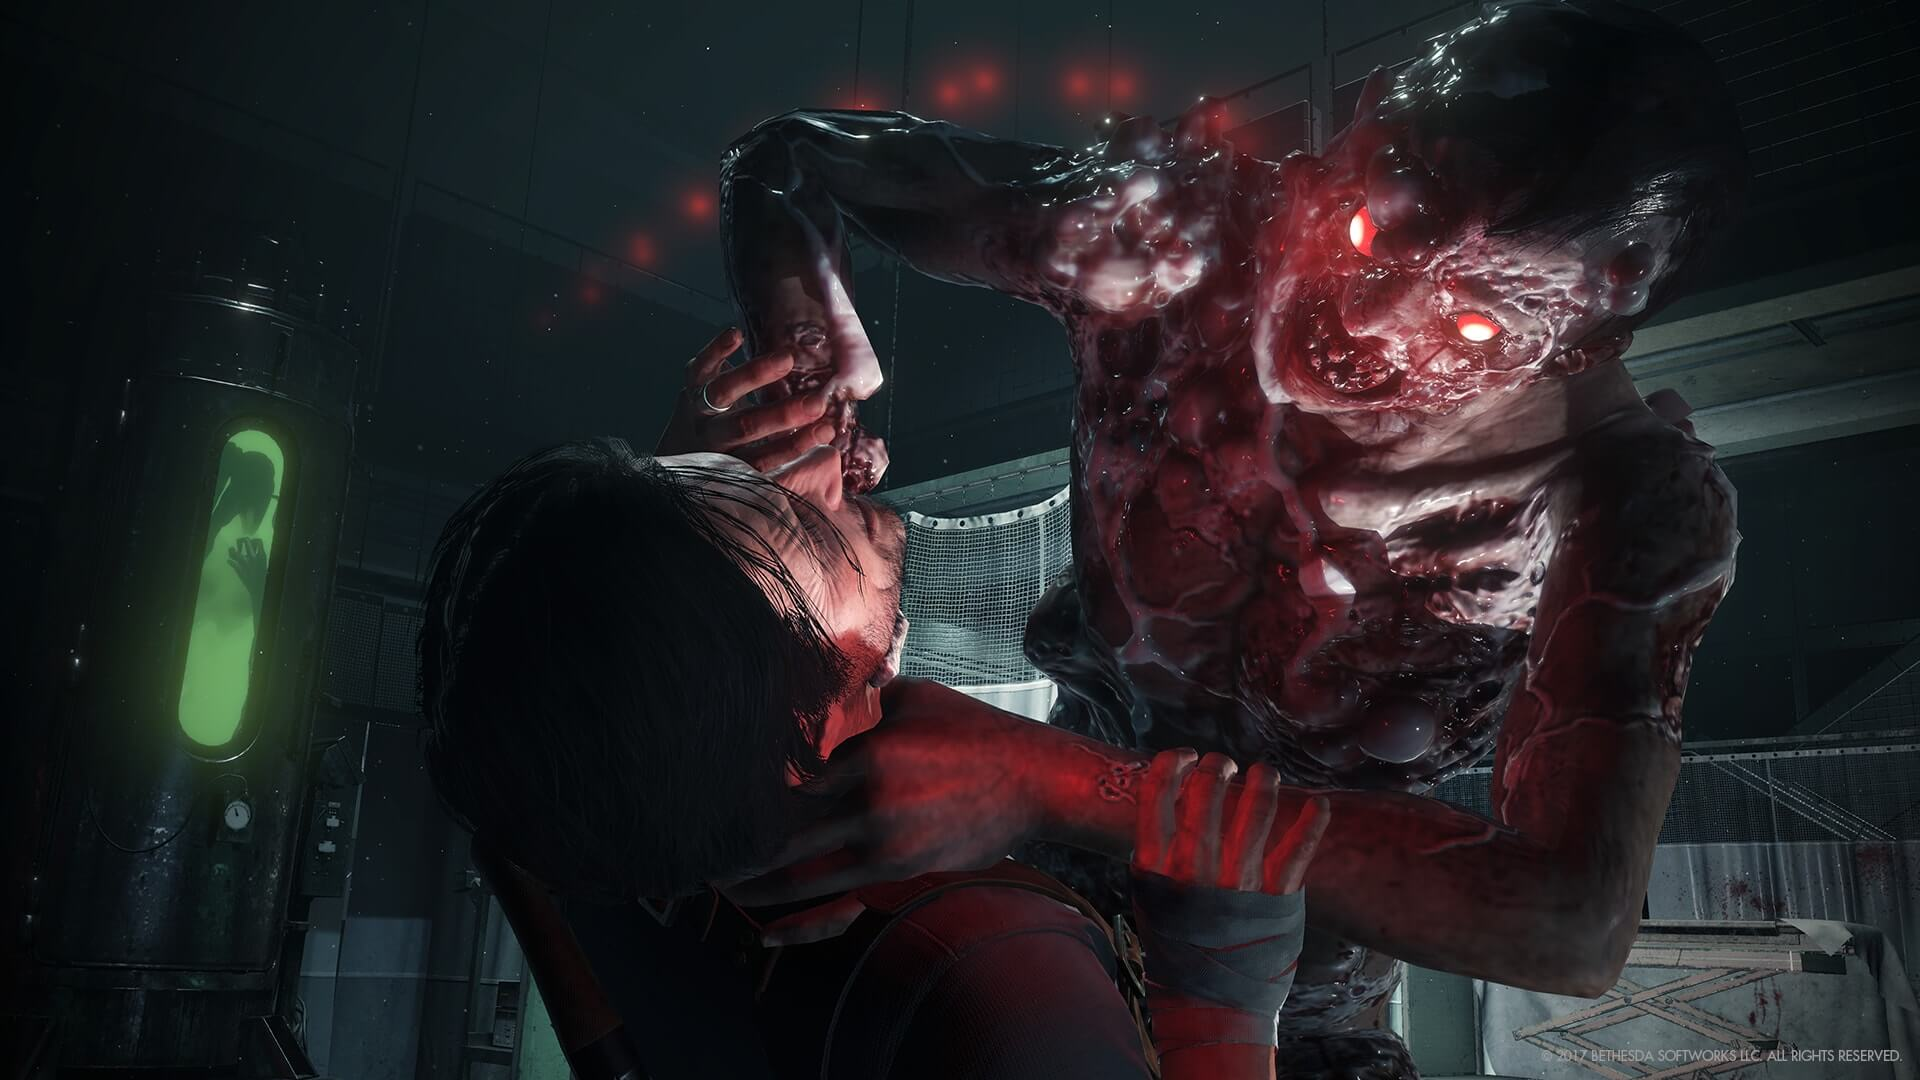 the evil within2 monster strangle 1 - The Evil Within 2 Gets a Maniacal Launch Trailer